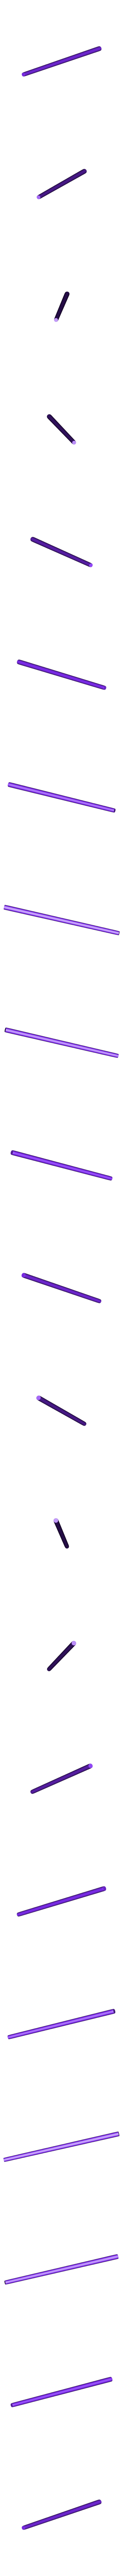 Light saber.stl Download free STL file jedi • 3D printing template, tutus